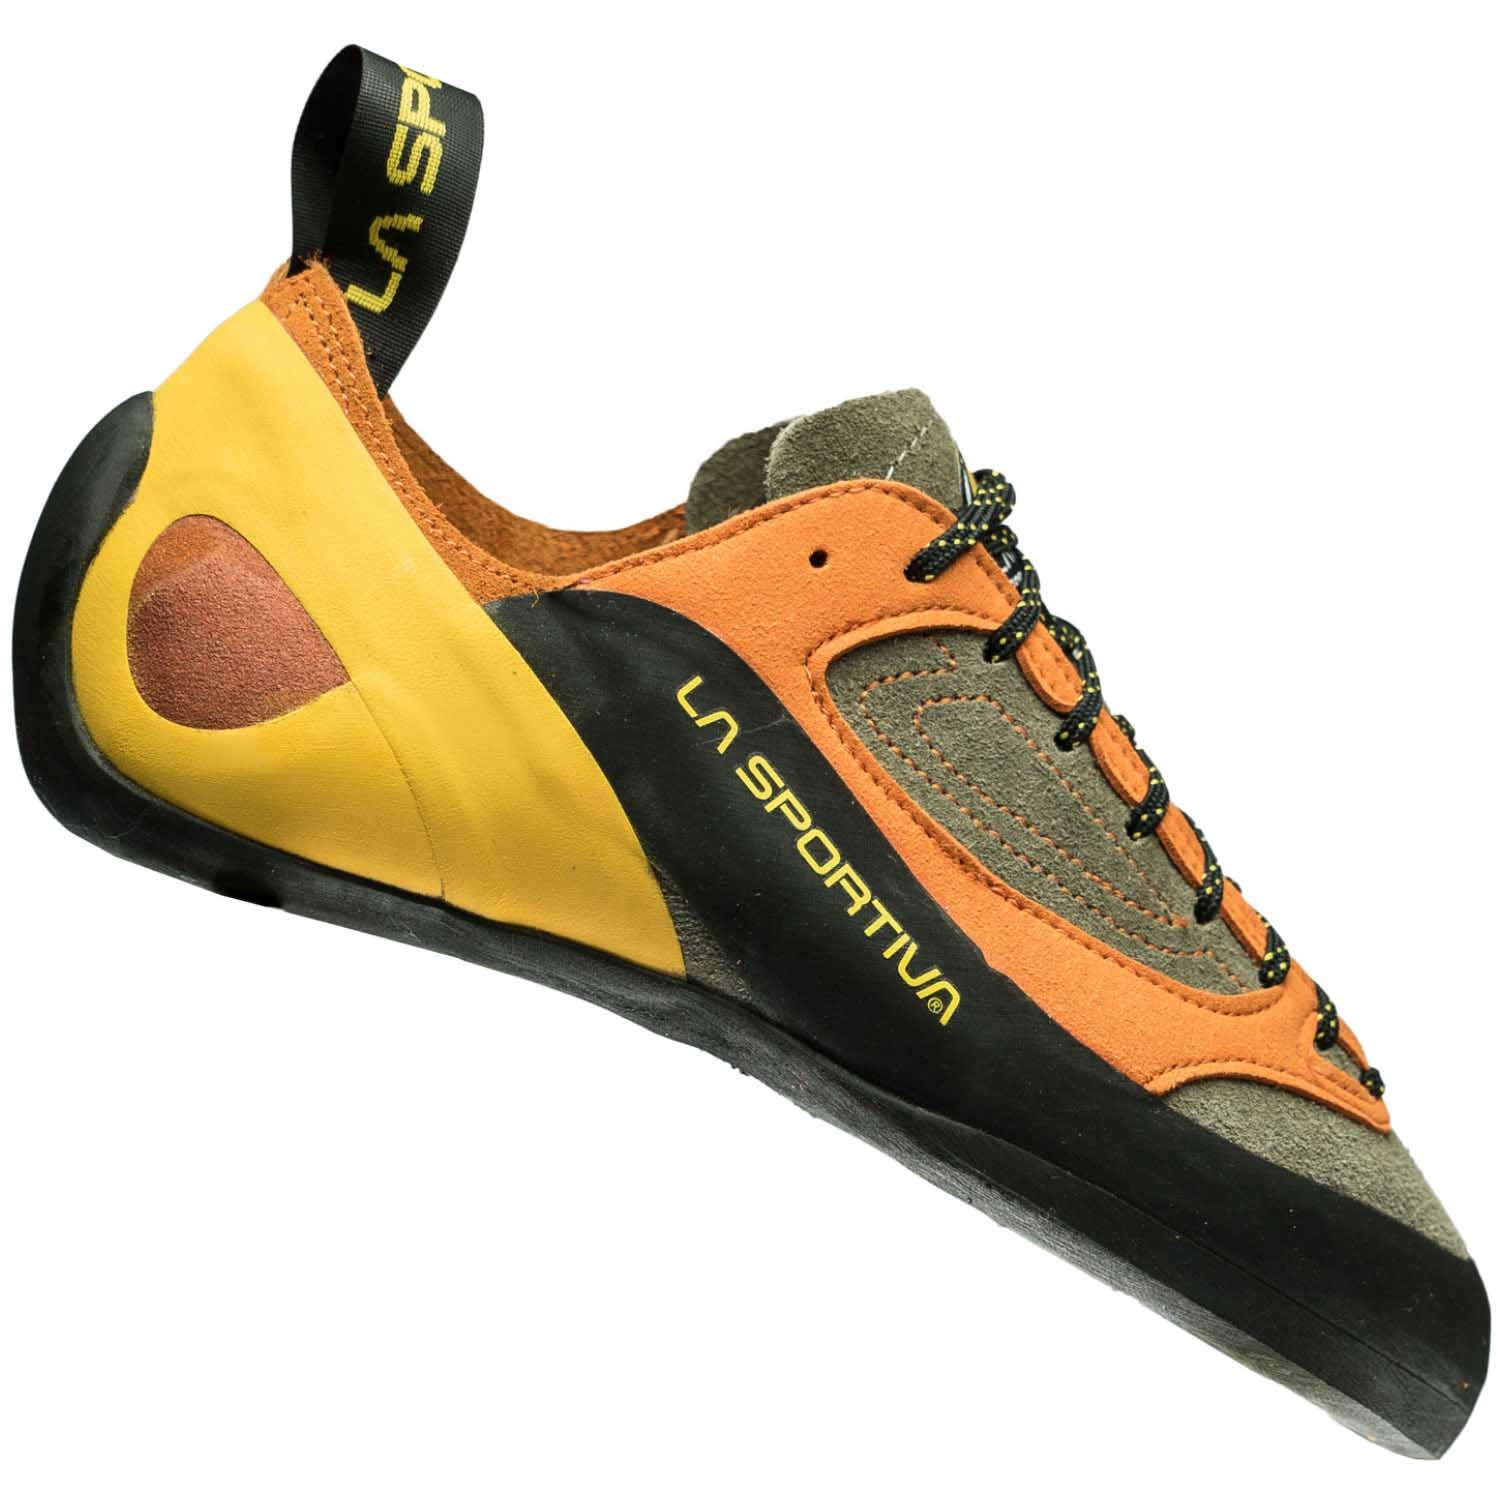 LA SPORTIVA - Finale Climbing Shoe Brown/Orange